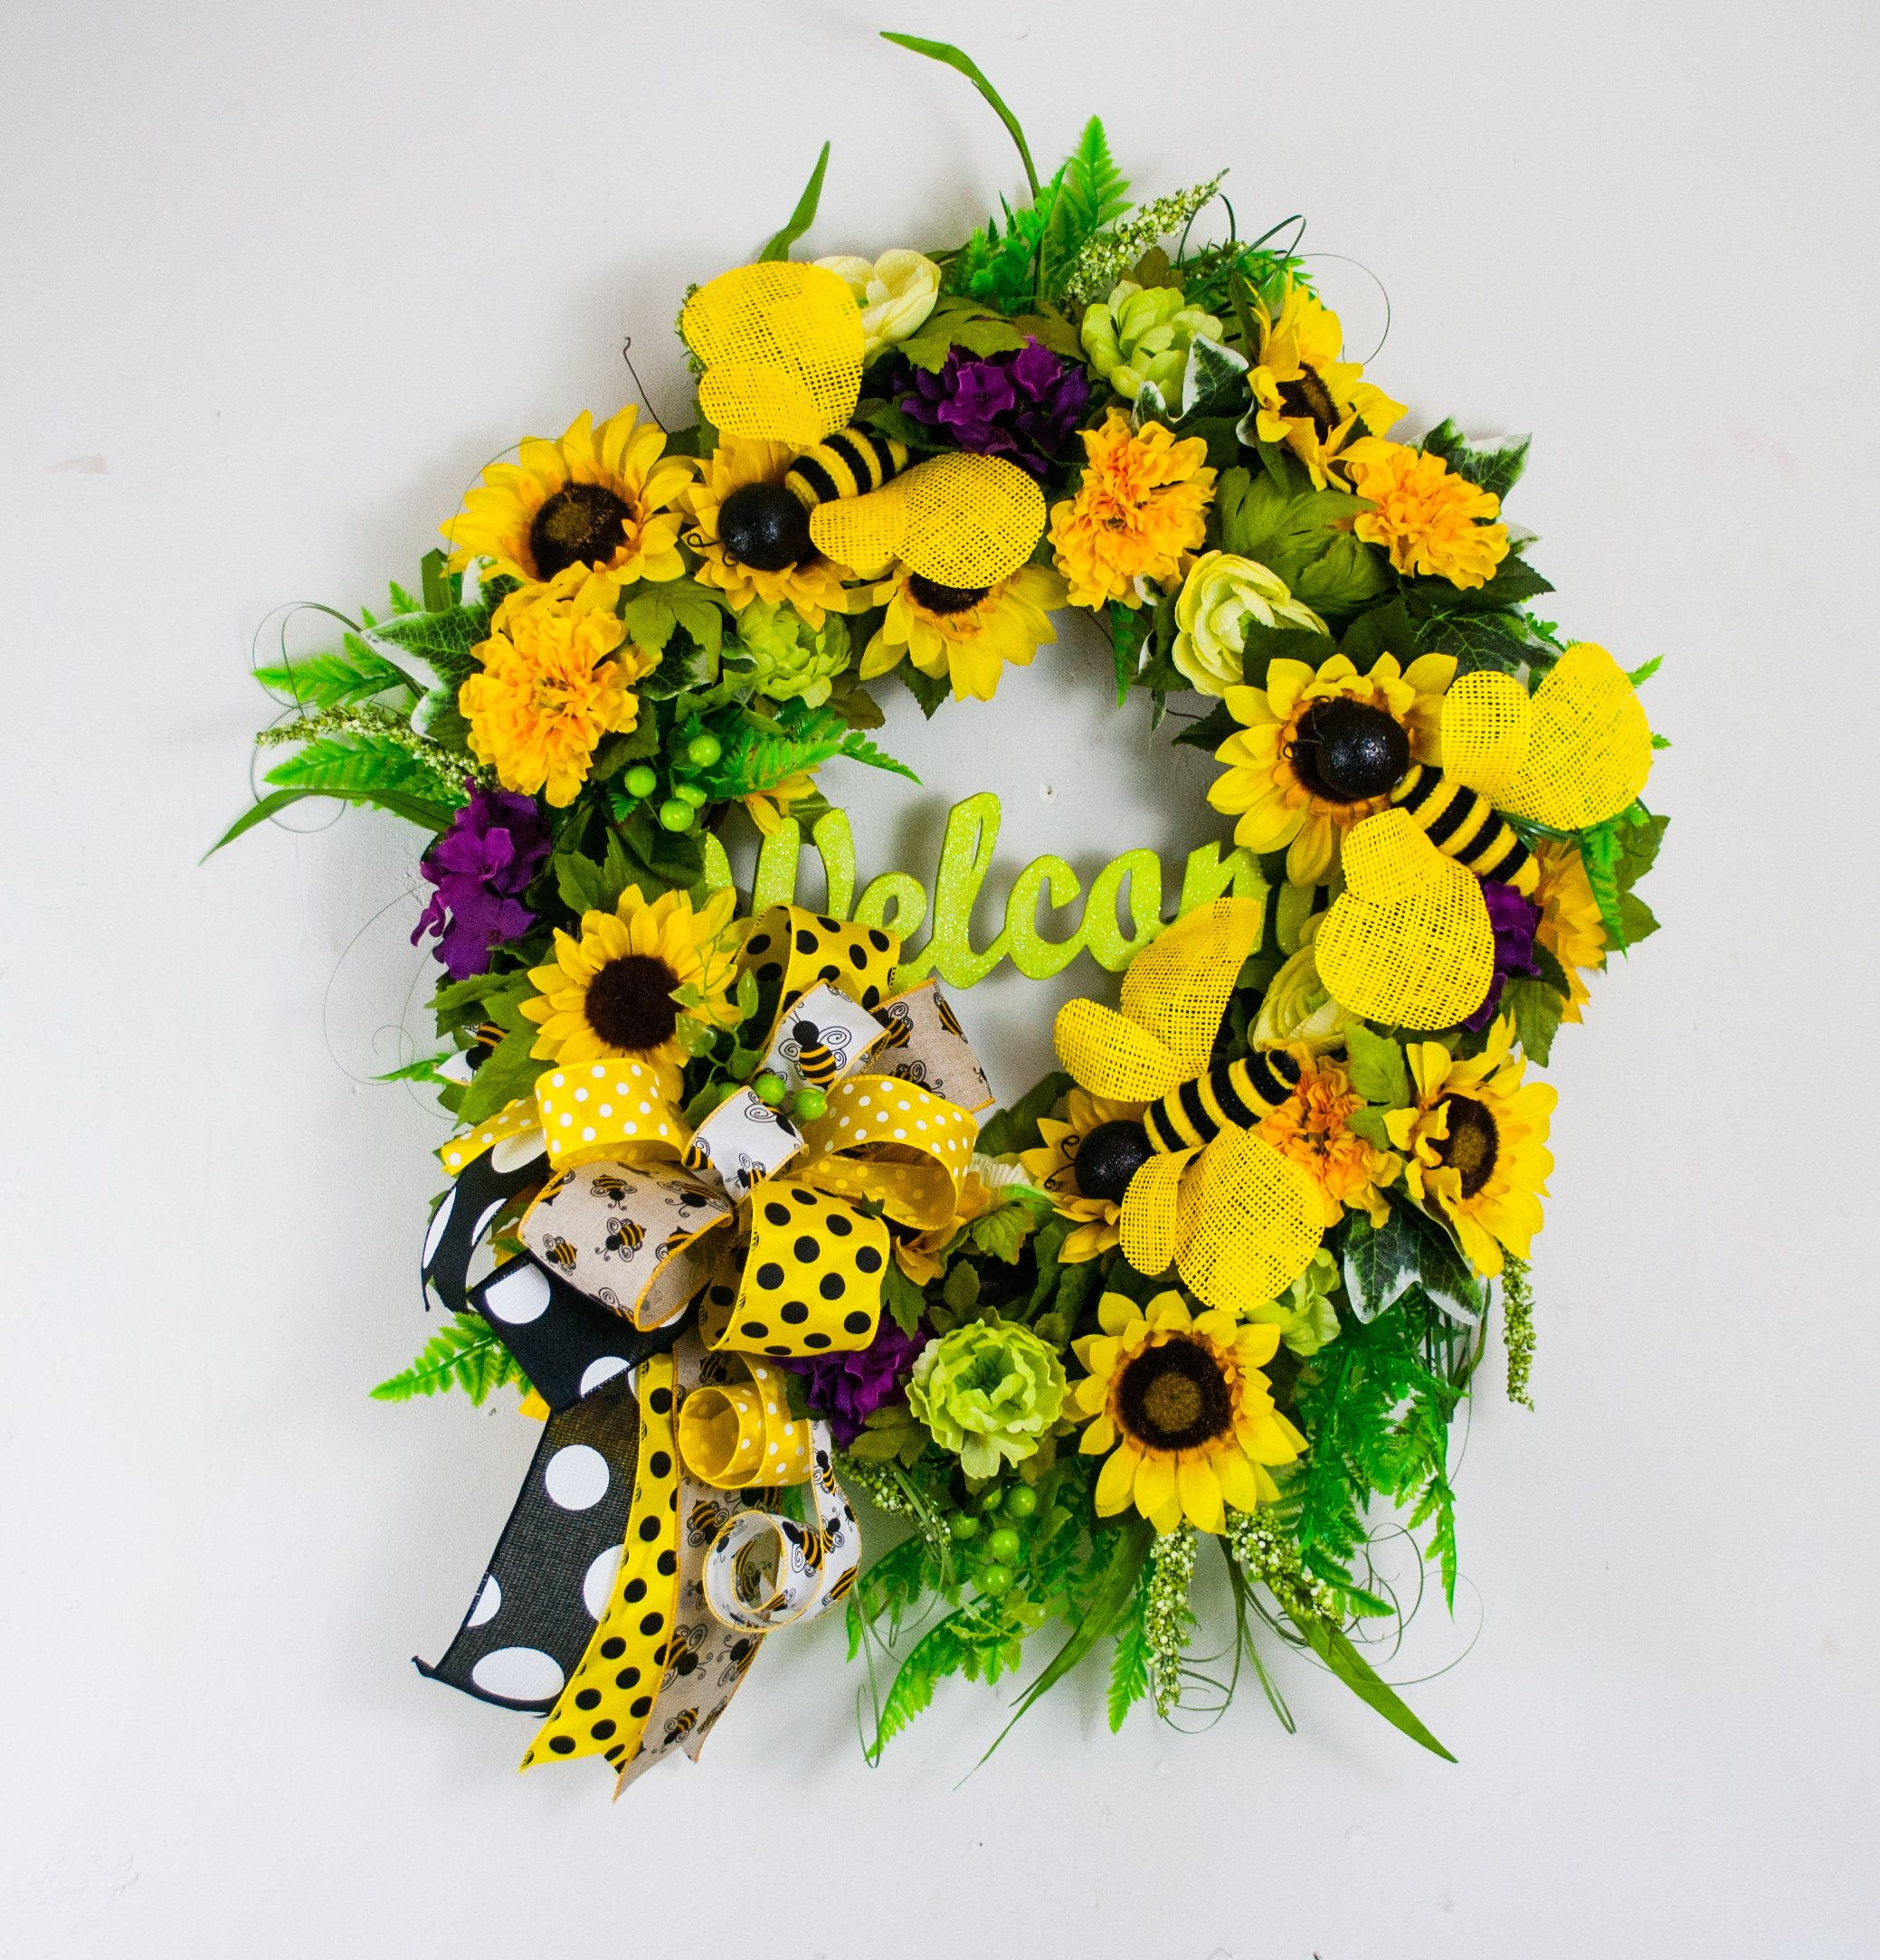 Photo of Sunflower wreath with bumble bees, summer sunflower wreath for front door, Welcome wreath with sunflowers and bumble bees